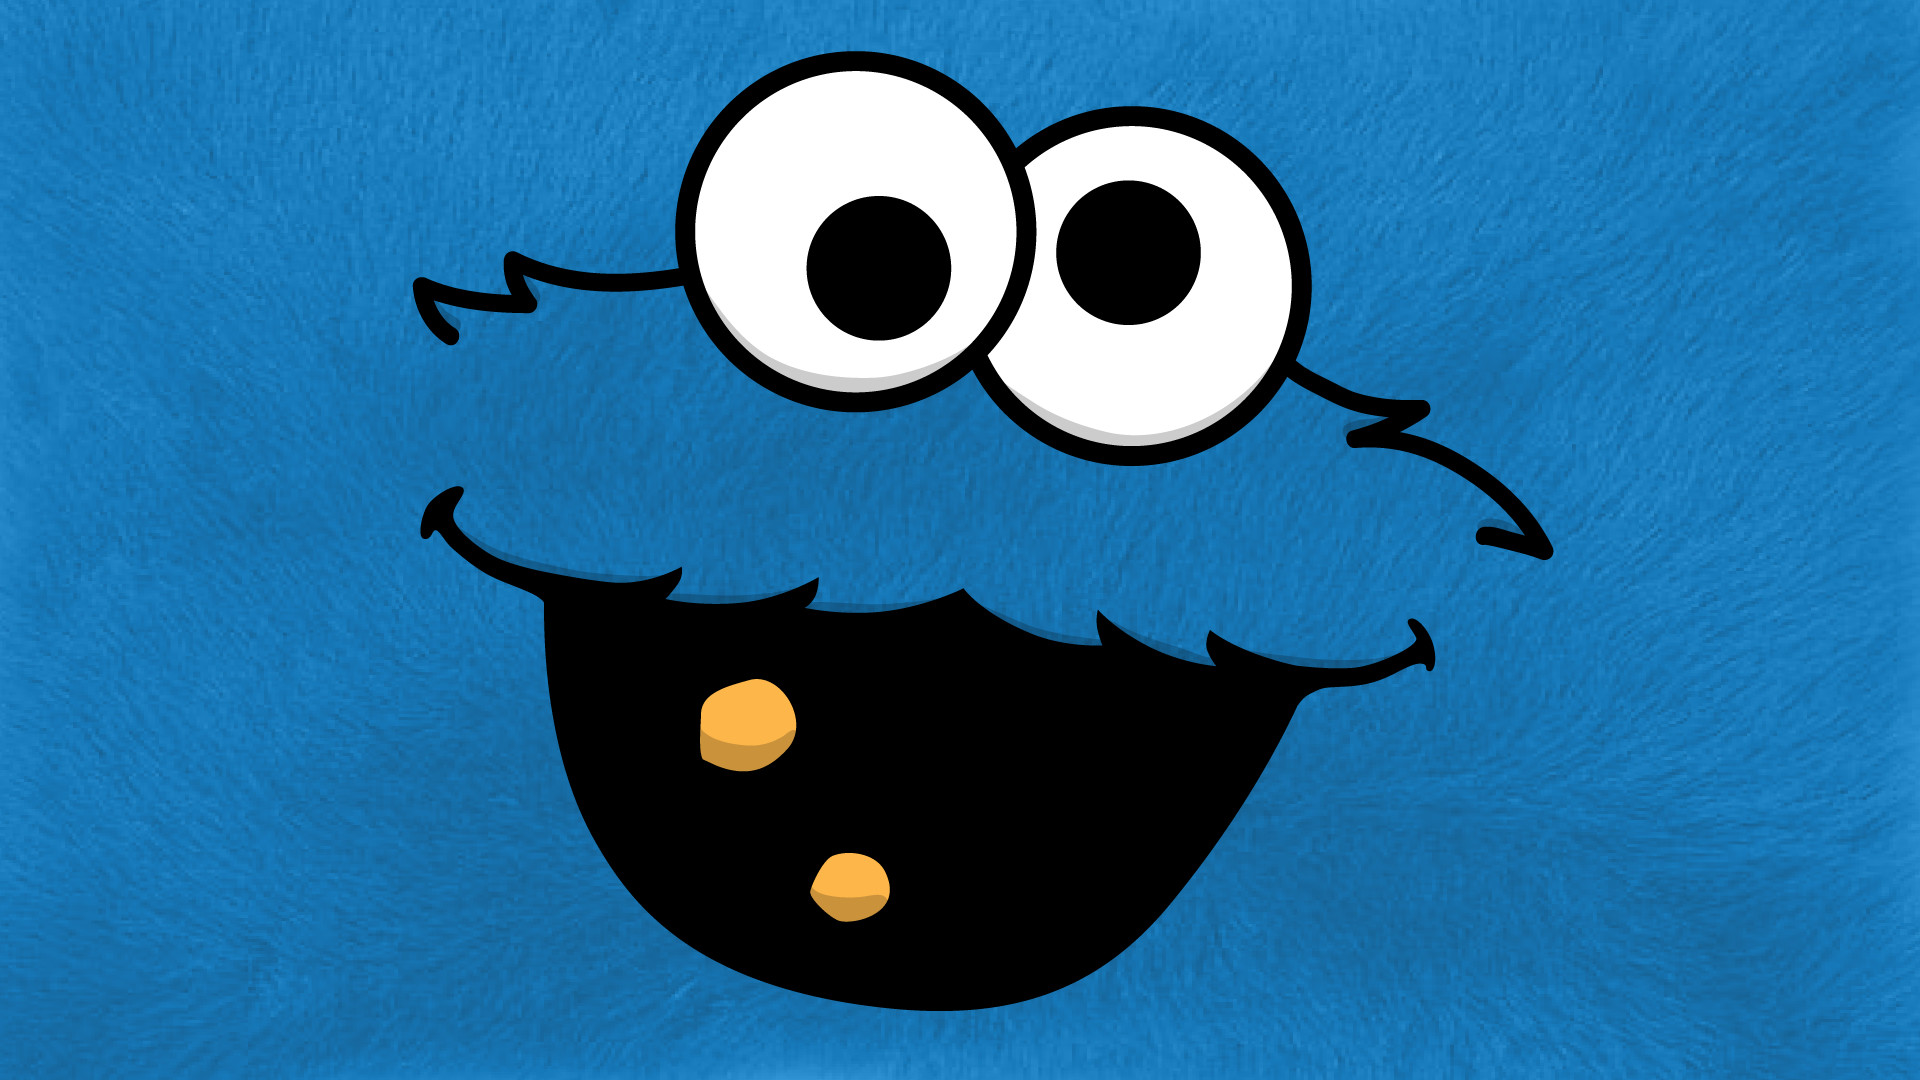 Elmo wallpaper 56 images - Cookie monster wallpaper ...